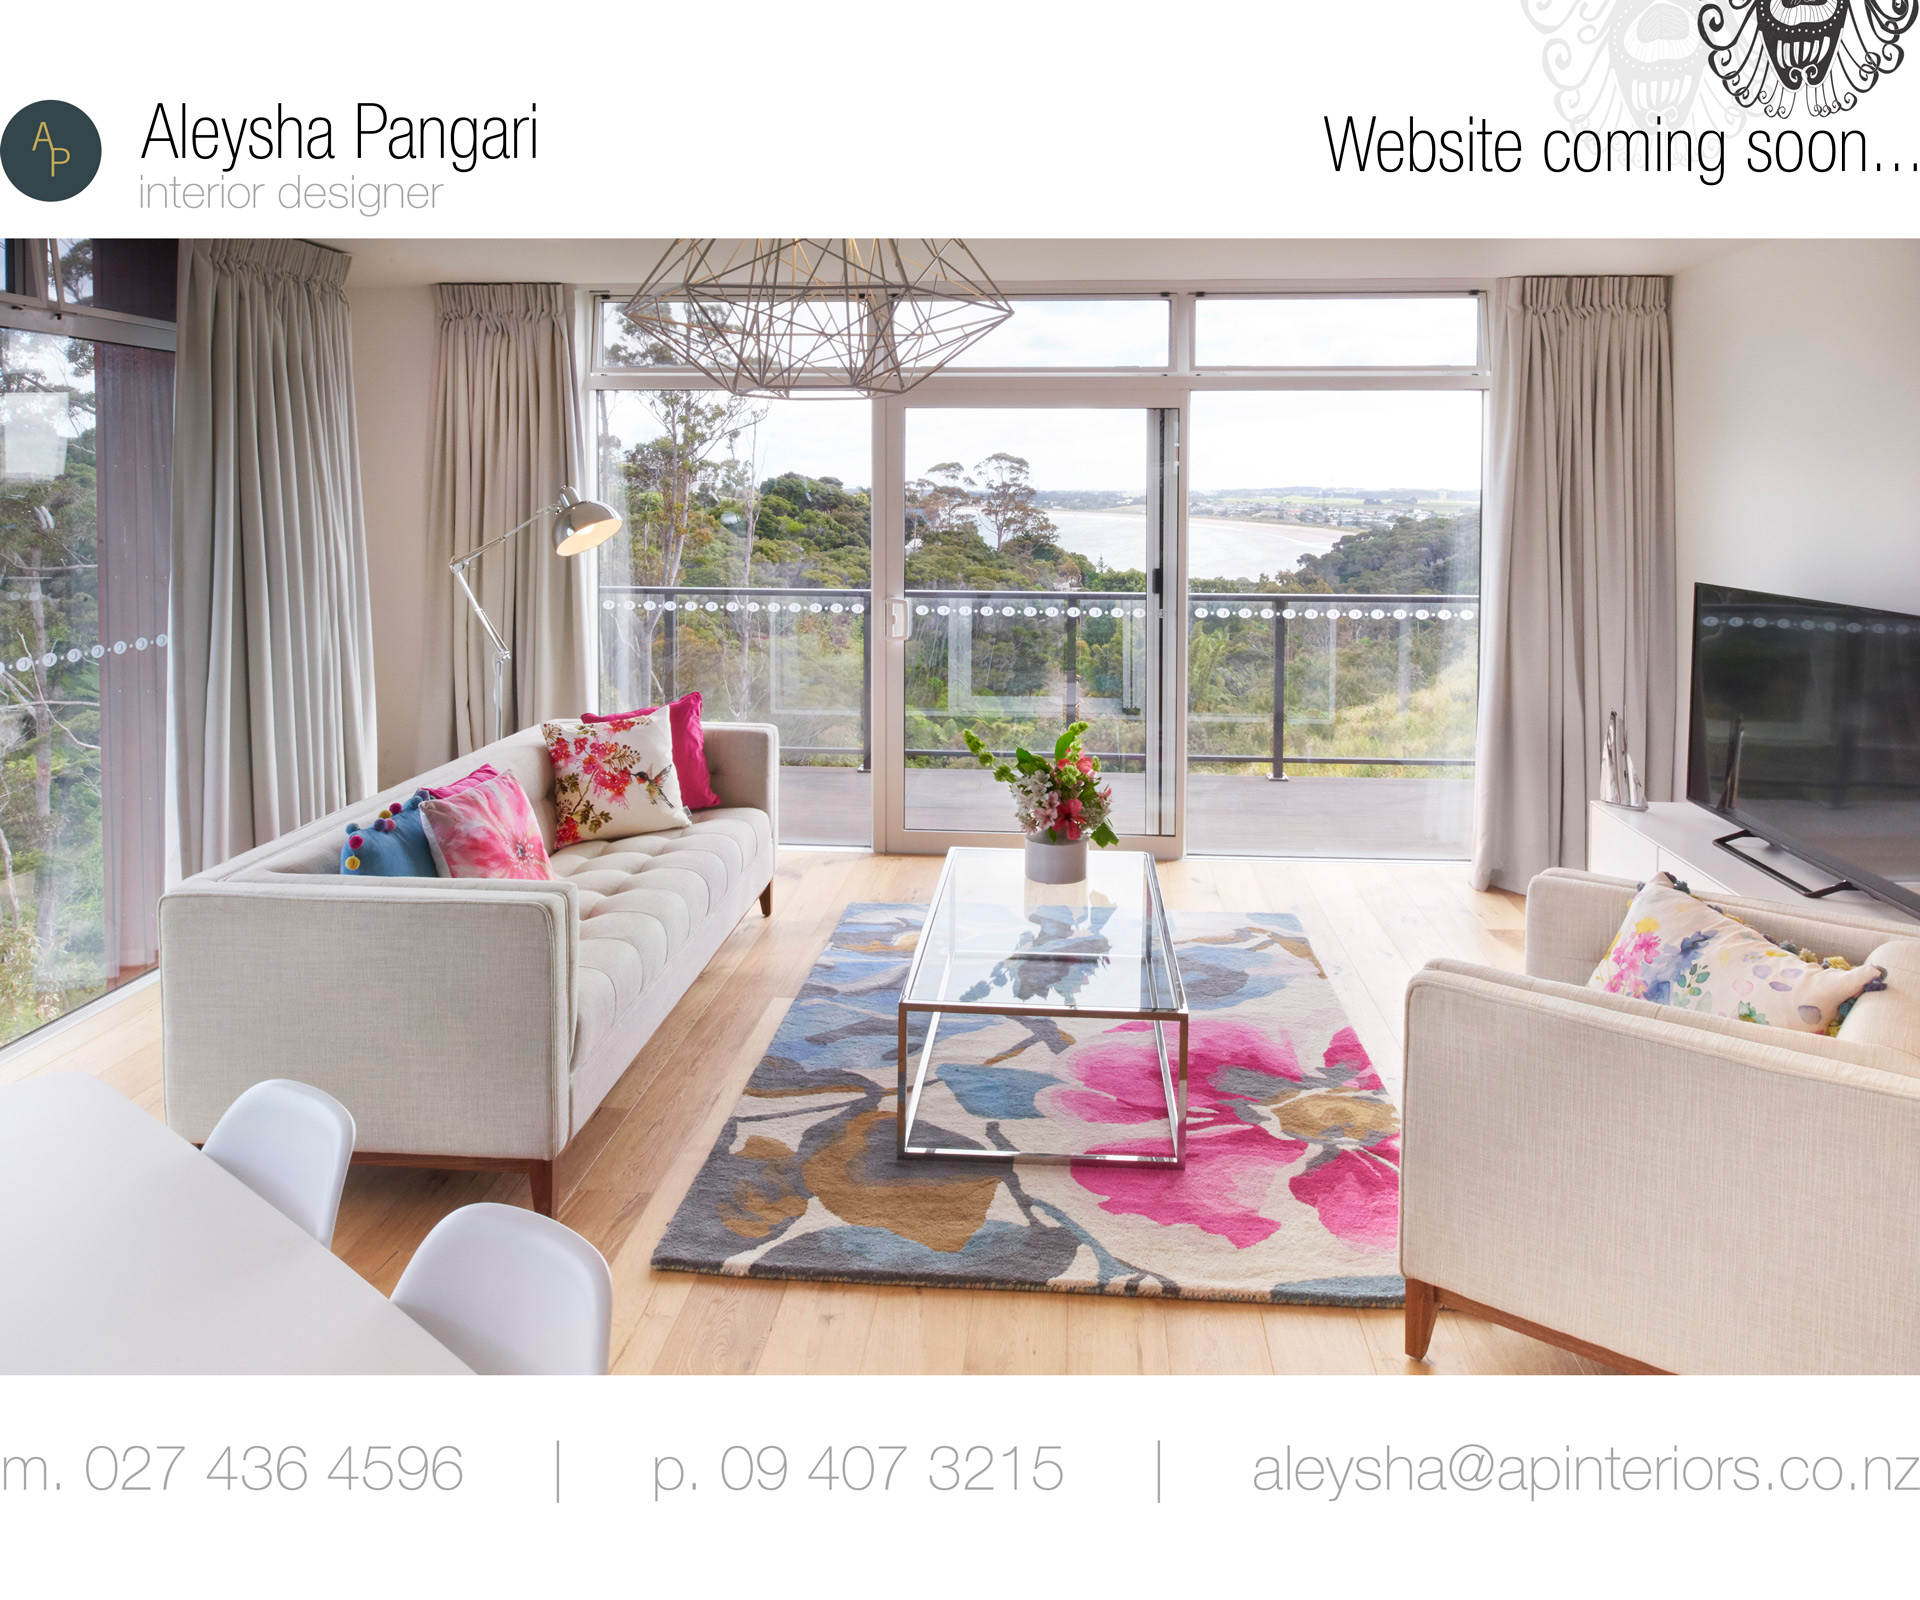 Aleysha Pangari Interior Design Kerikeri, Bay of Islands